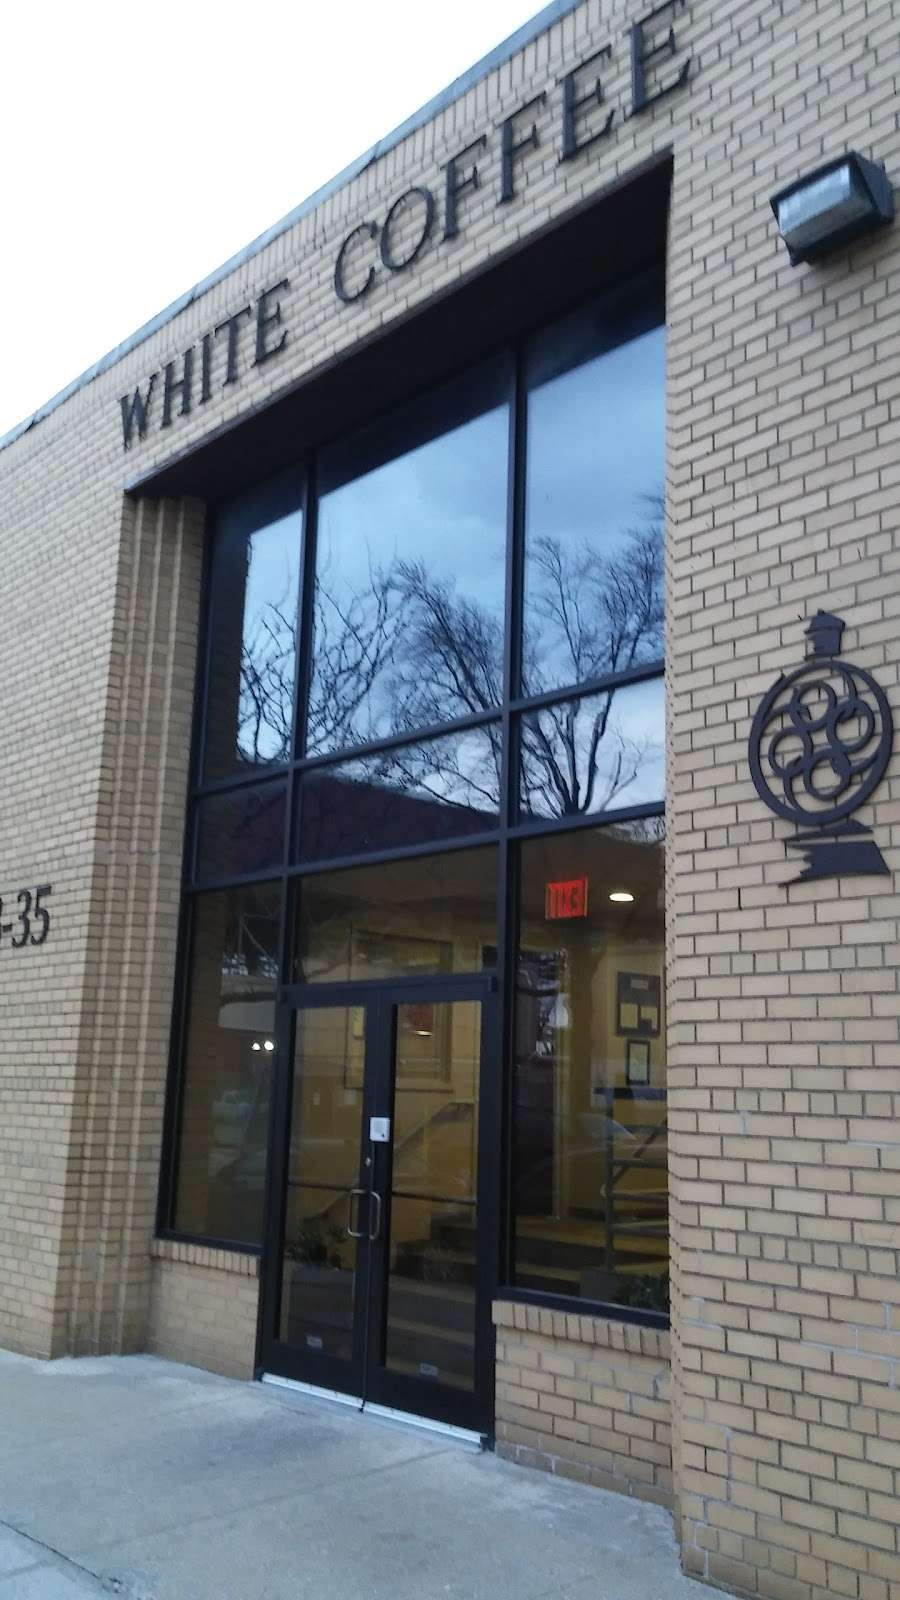 White Coffee Corporation - cafe  | Photo 1 of 1 | Address: 18-35 Steinway Pl, Astoria, NY 11105, USA | Phone: (718) 204-7900